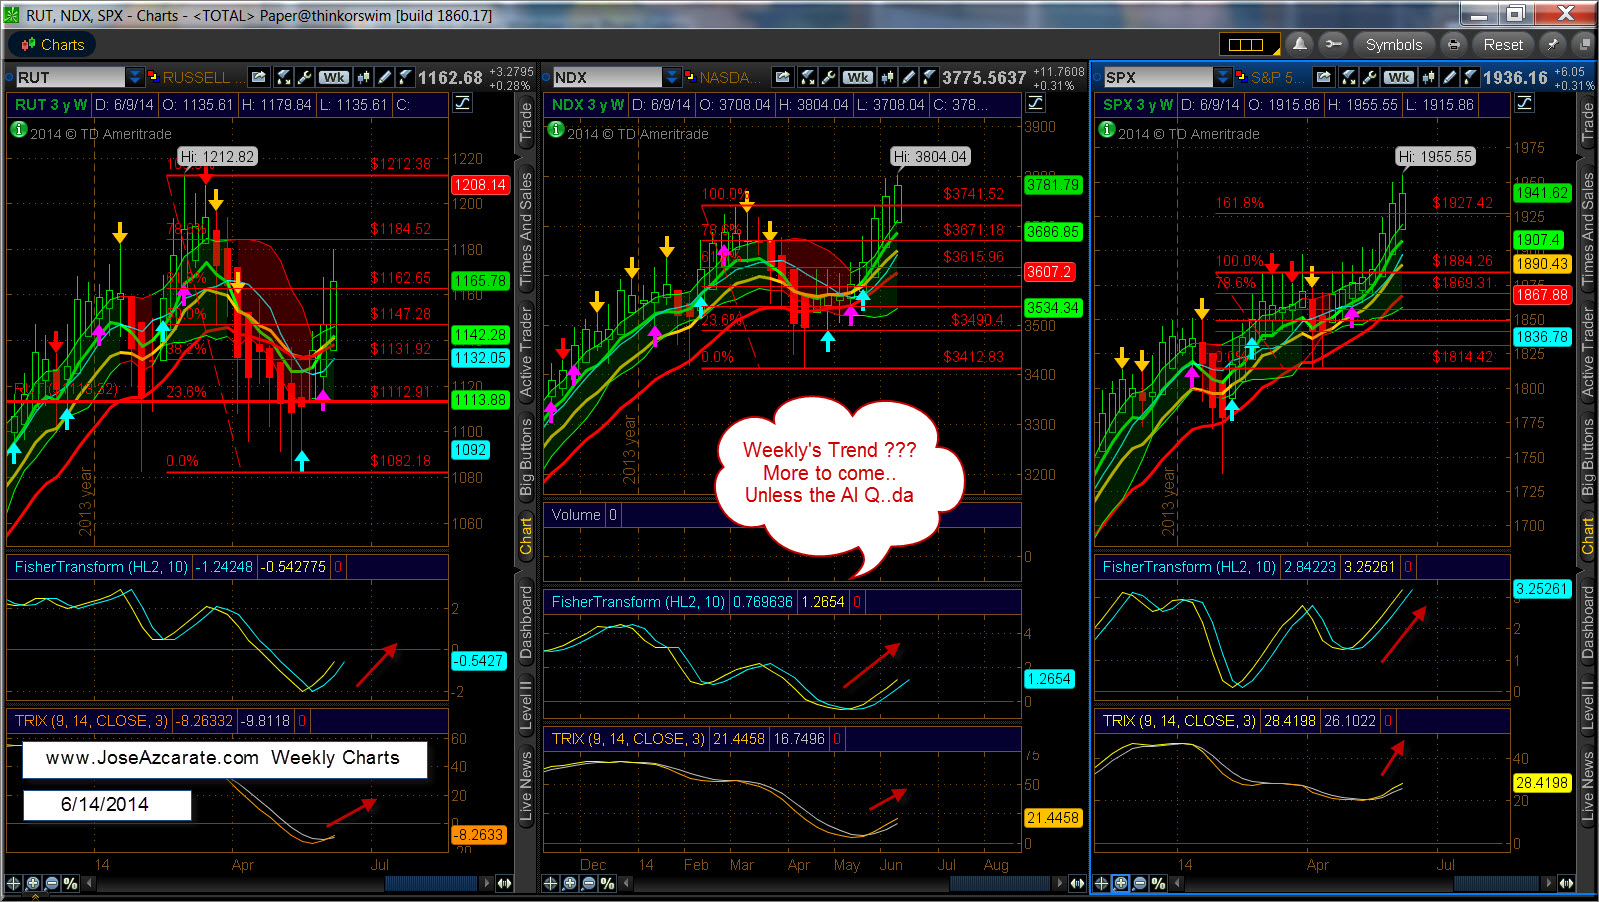 RUT NDX and SPX Weekly Charts 6-14-2014.jpg